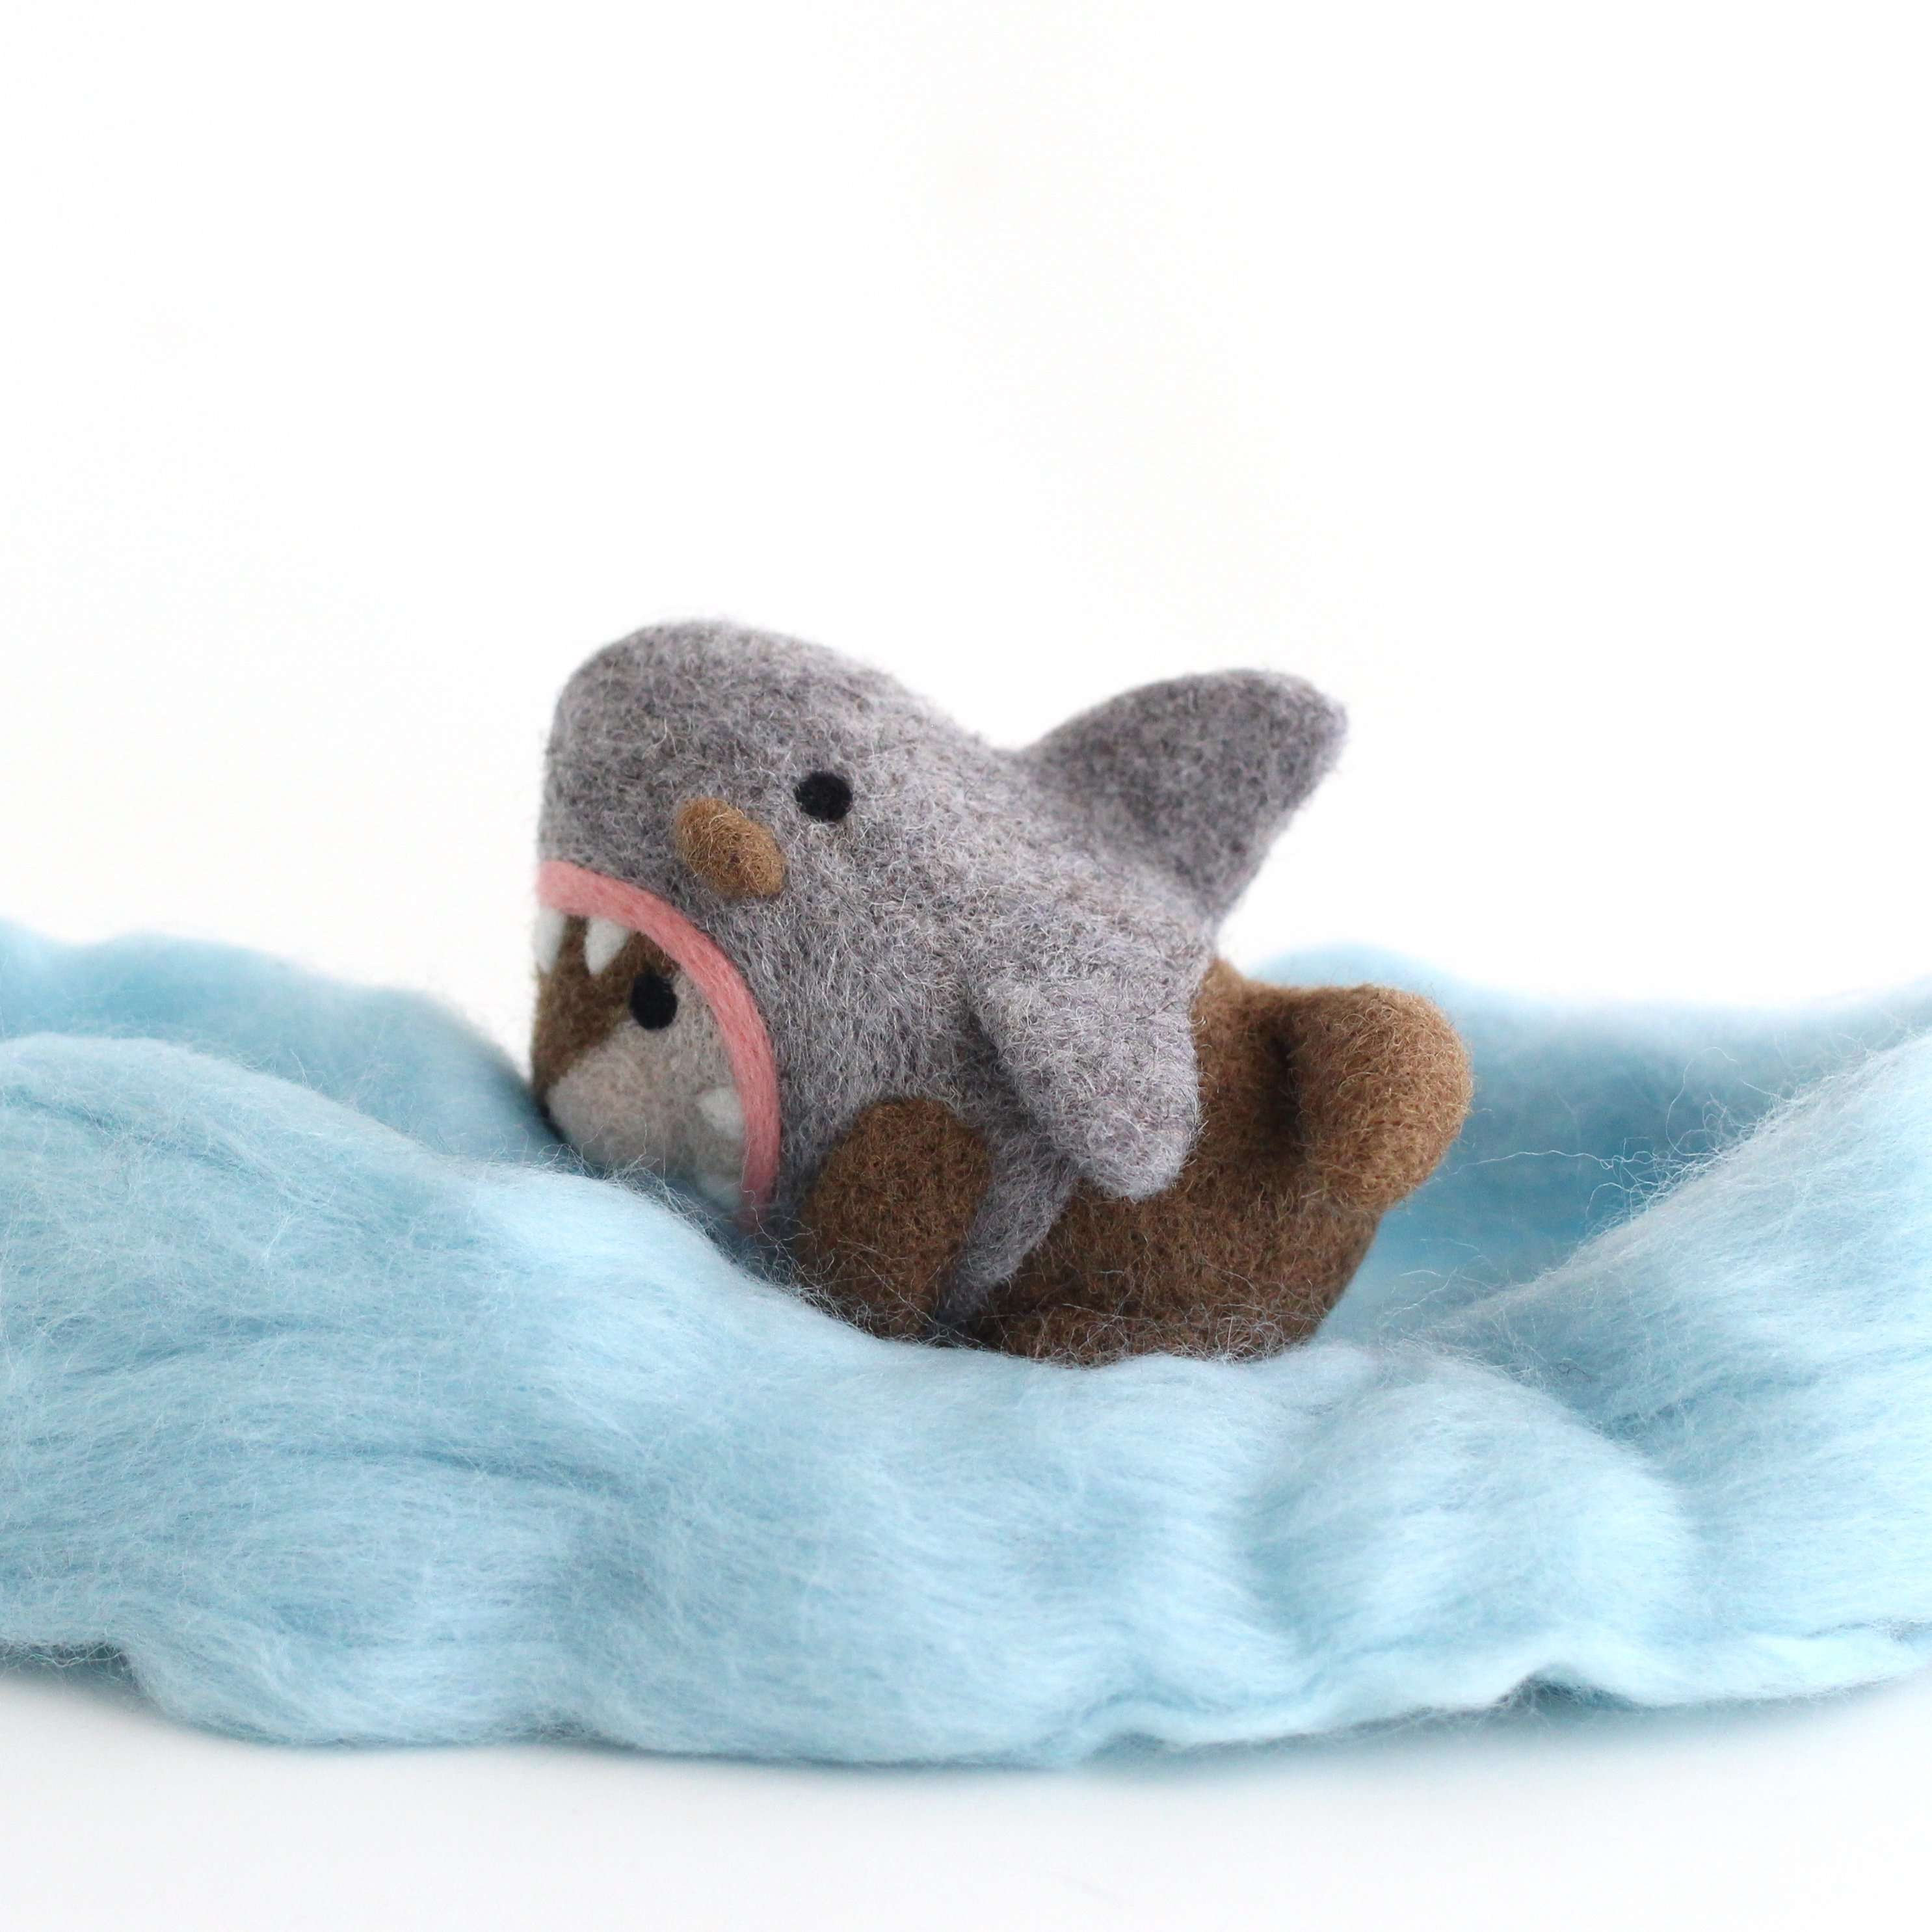 Needle Felted River Otter in a Shark Costume by Wild Whimsy Woolies